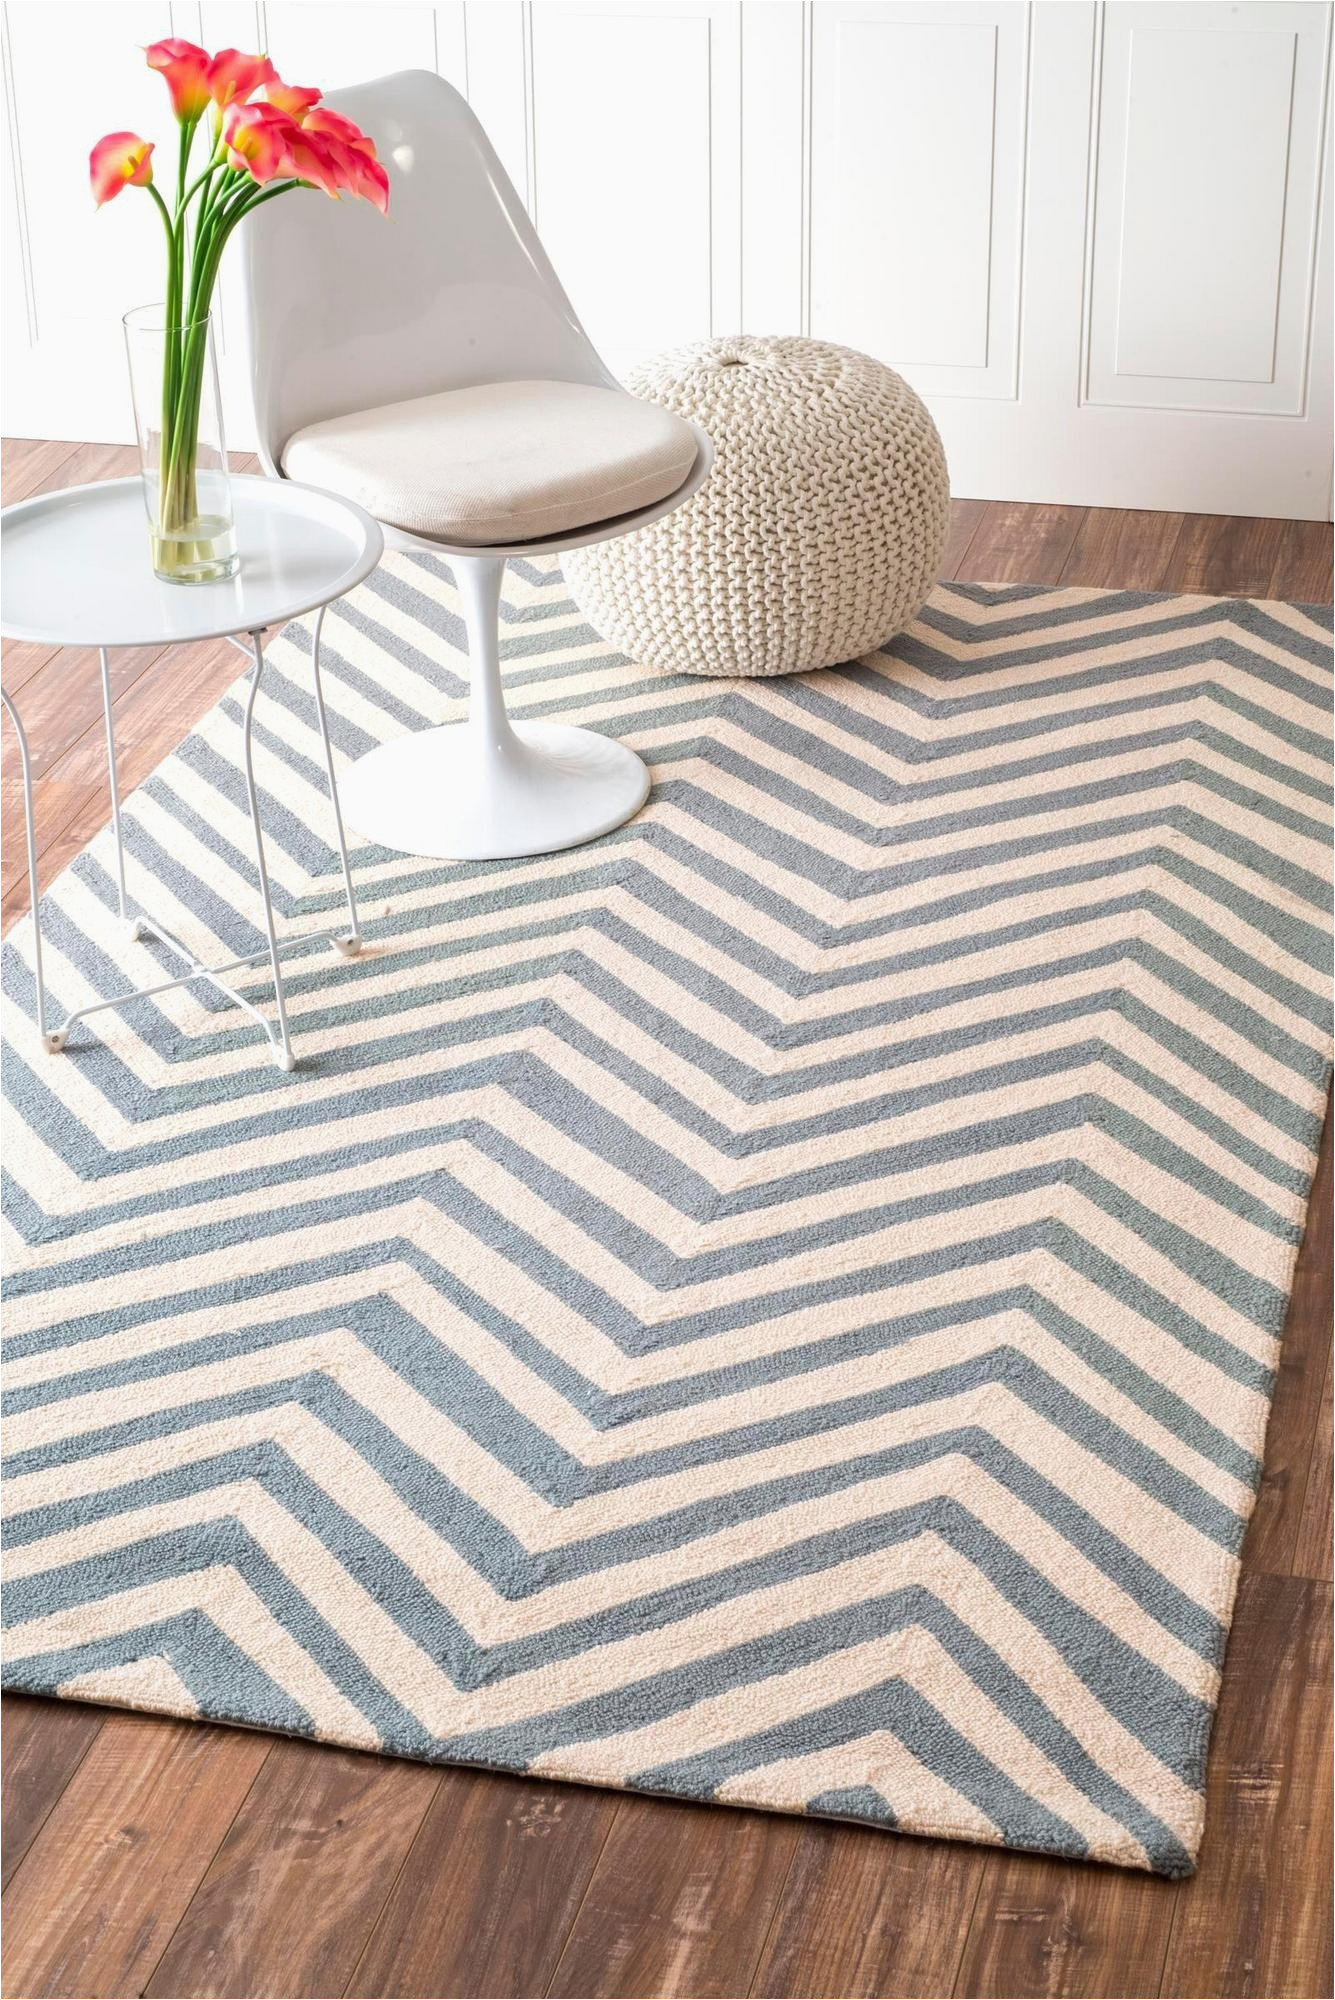 Light Blue Chevron Rug 6 X 9 Hand Hooked Chevron area Rug Light Blue Ru